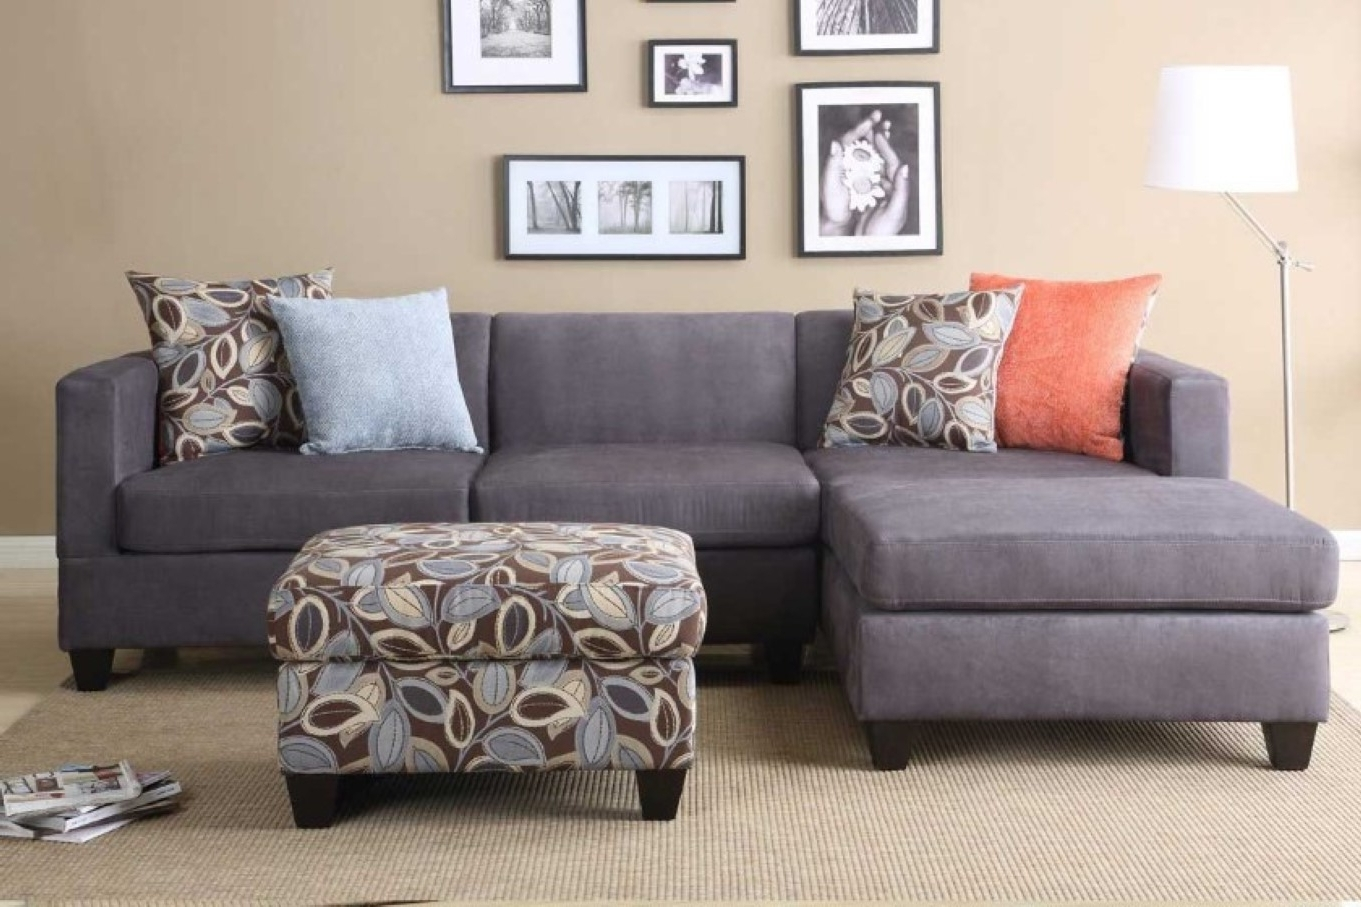 Incredible Microfiber Sleeper Sofa Top Home Design Ideas With Grey Regarding Most Up To Date 3 Piece Sectional Sleeper Sofas (View 12 of 20)